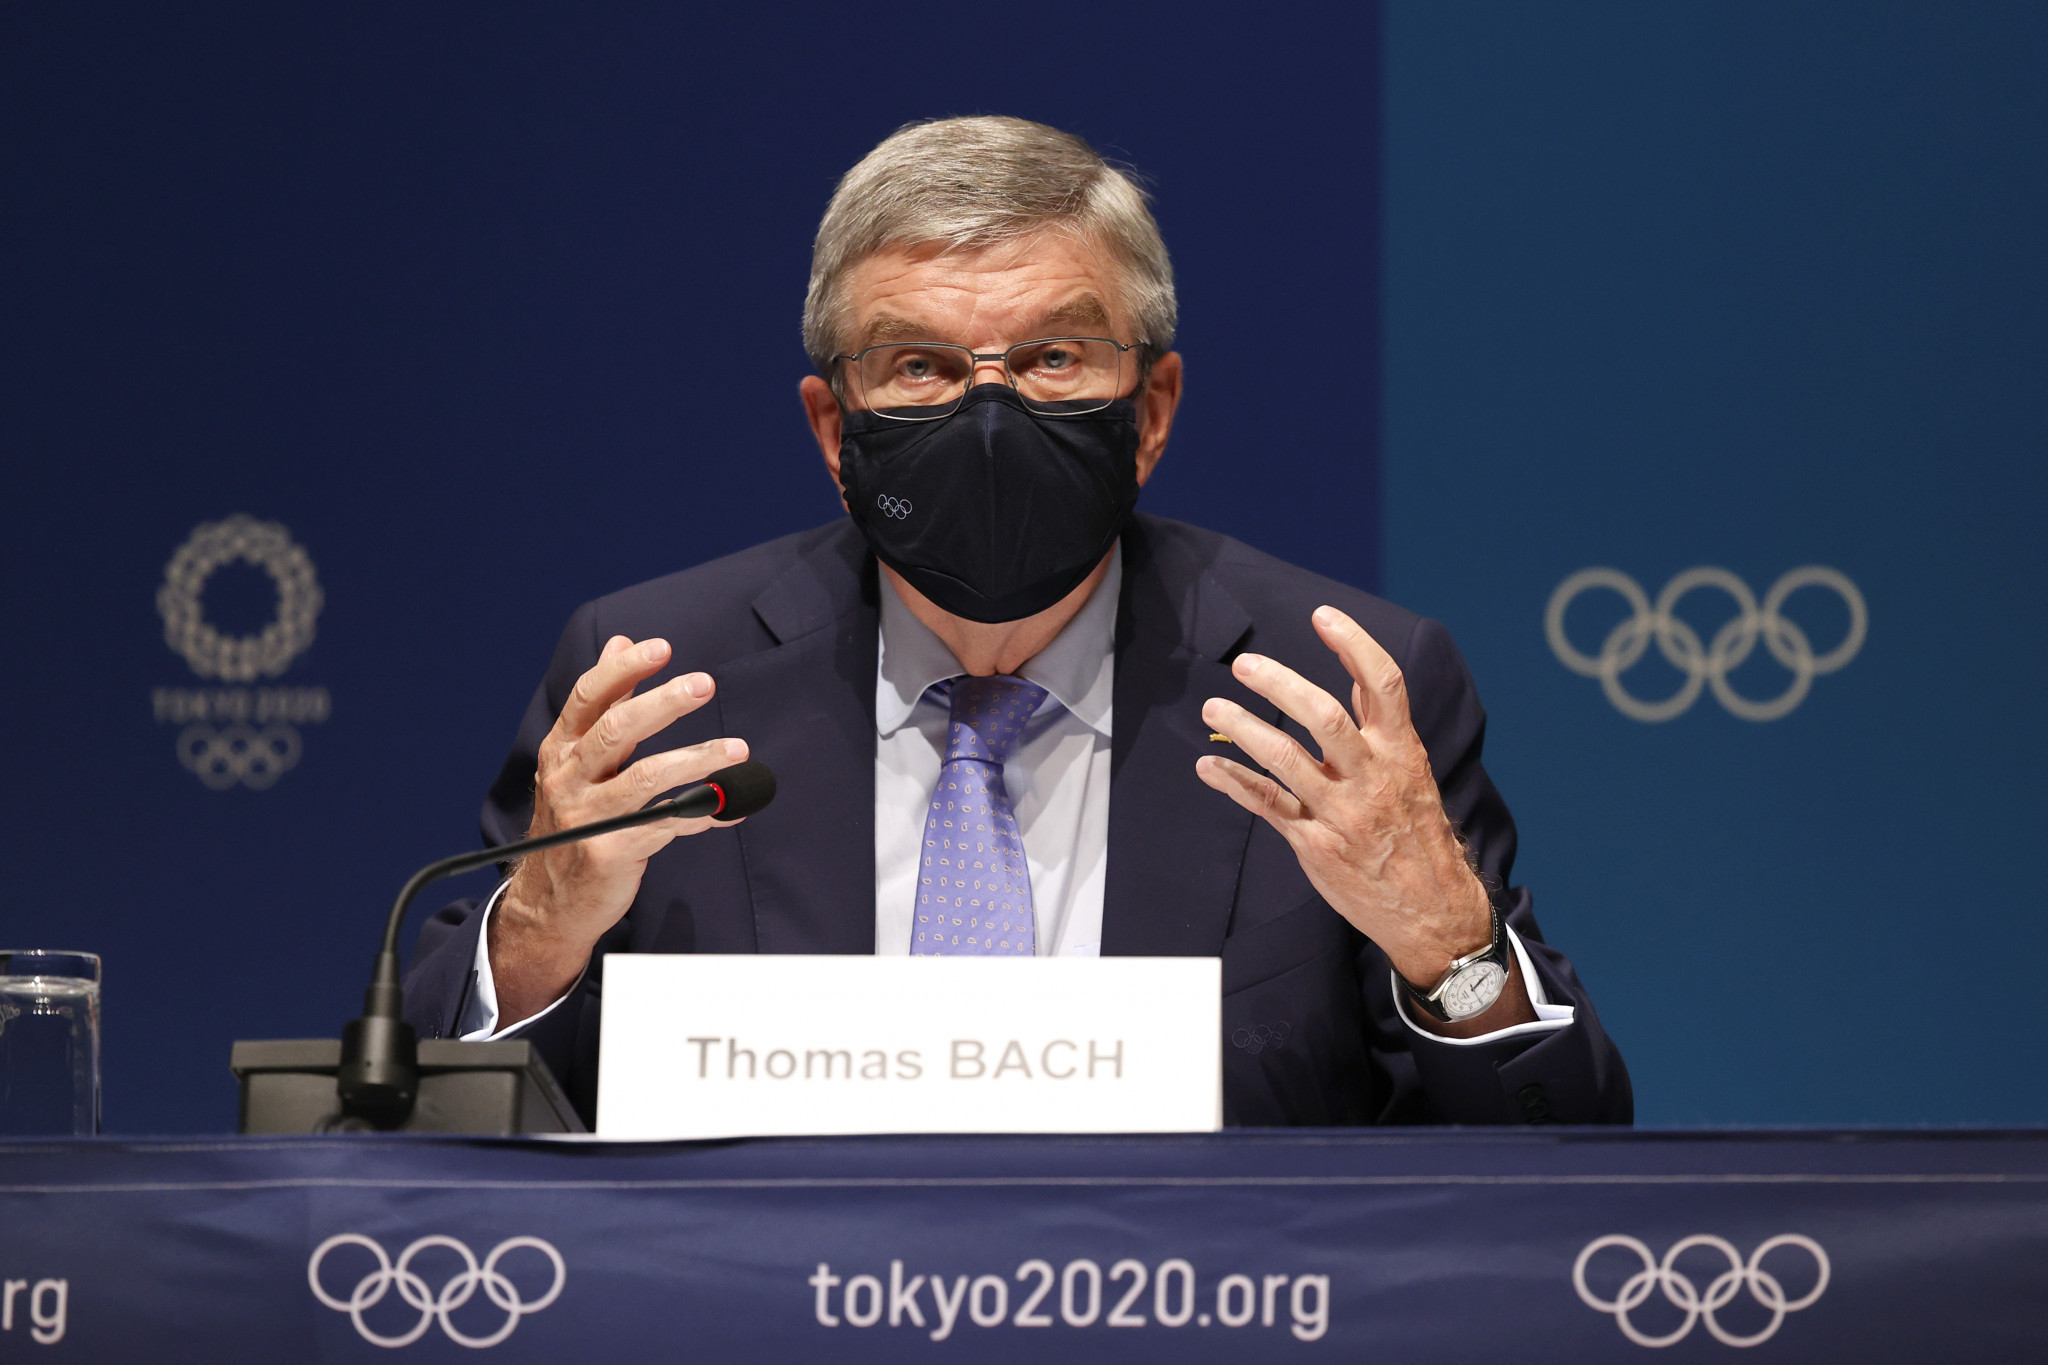 Thomas Bach invites athletes to sign Truce Wall in Olympic Village at Tokyo 2020